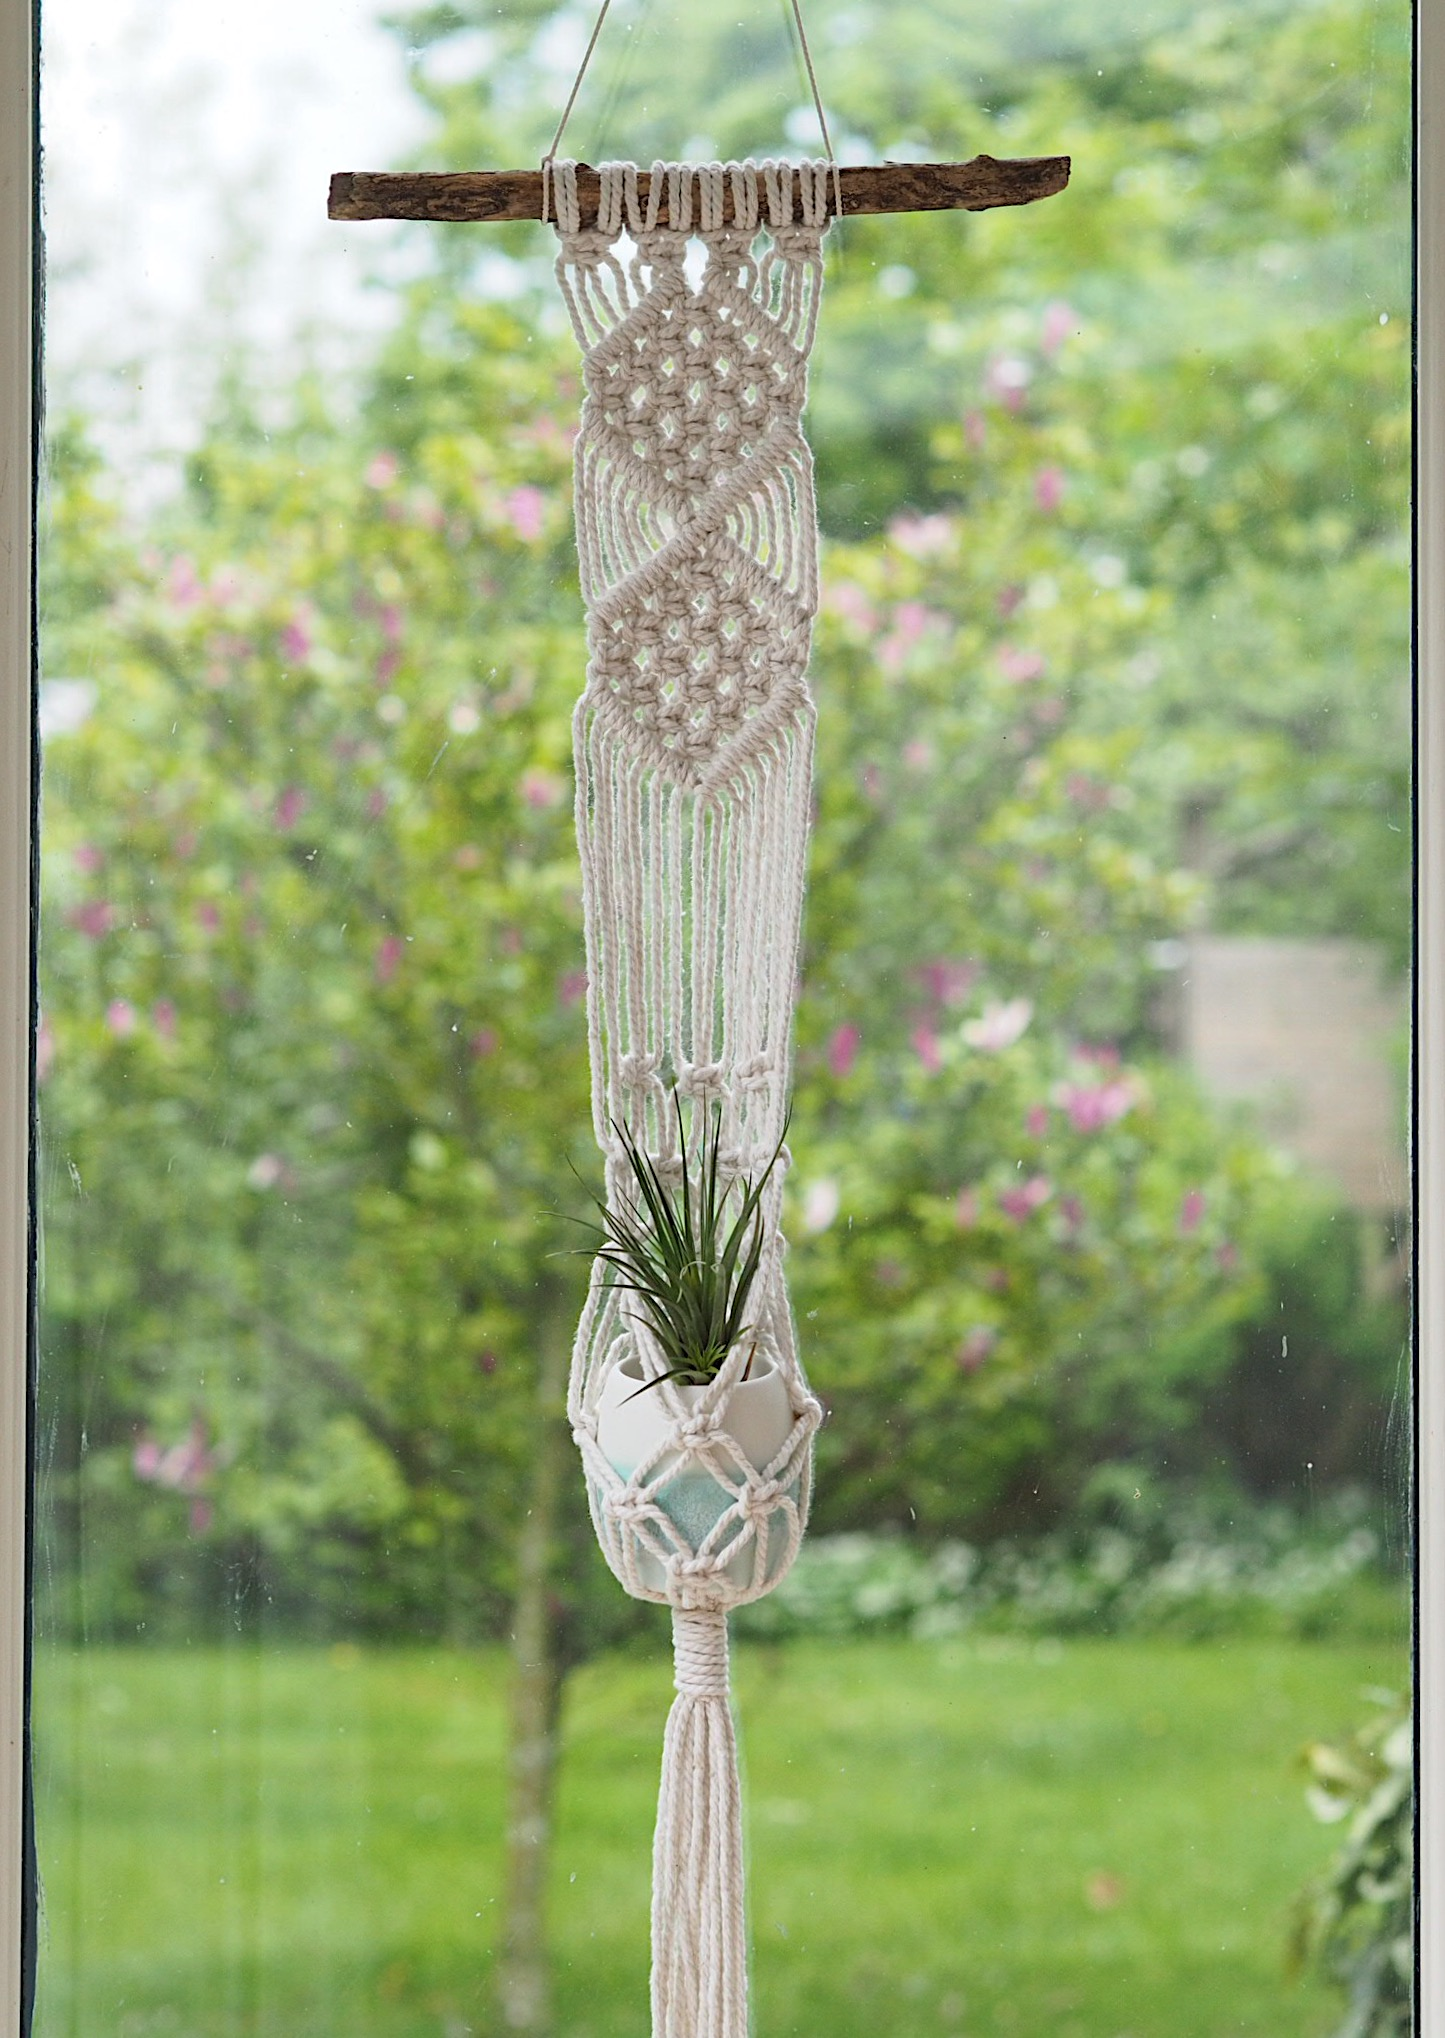 A beautiful macrame plant hanger from Isabella Strambio and a turquoise ombre sea-inspired porcelain plant pot are the prize for this month's #createinsummer hashtag challenge